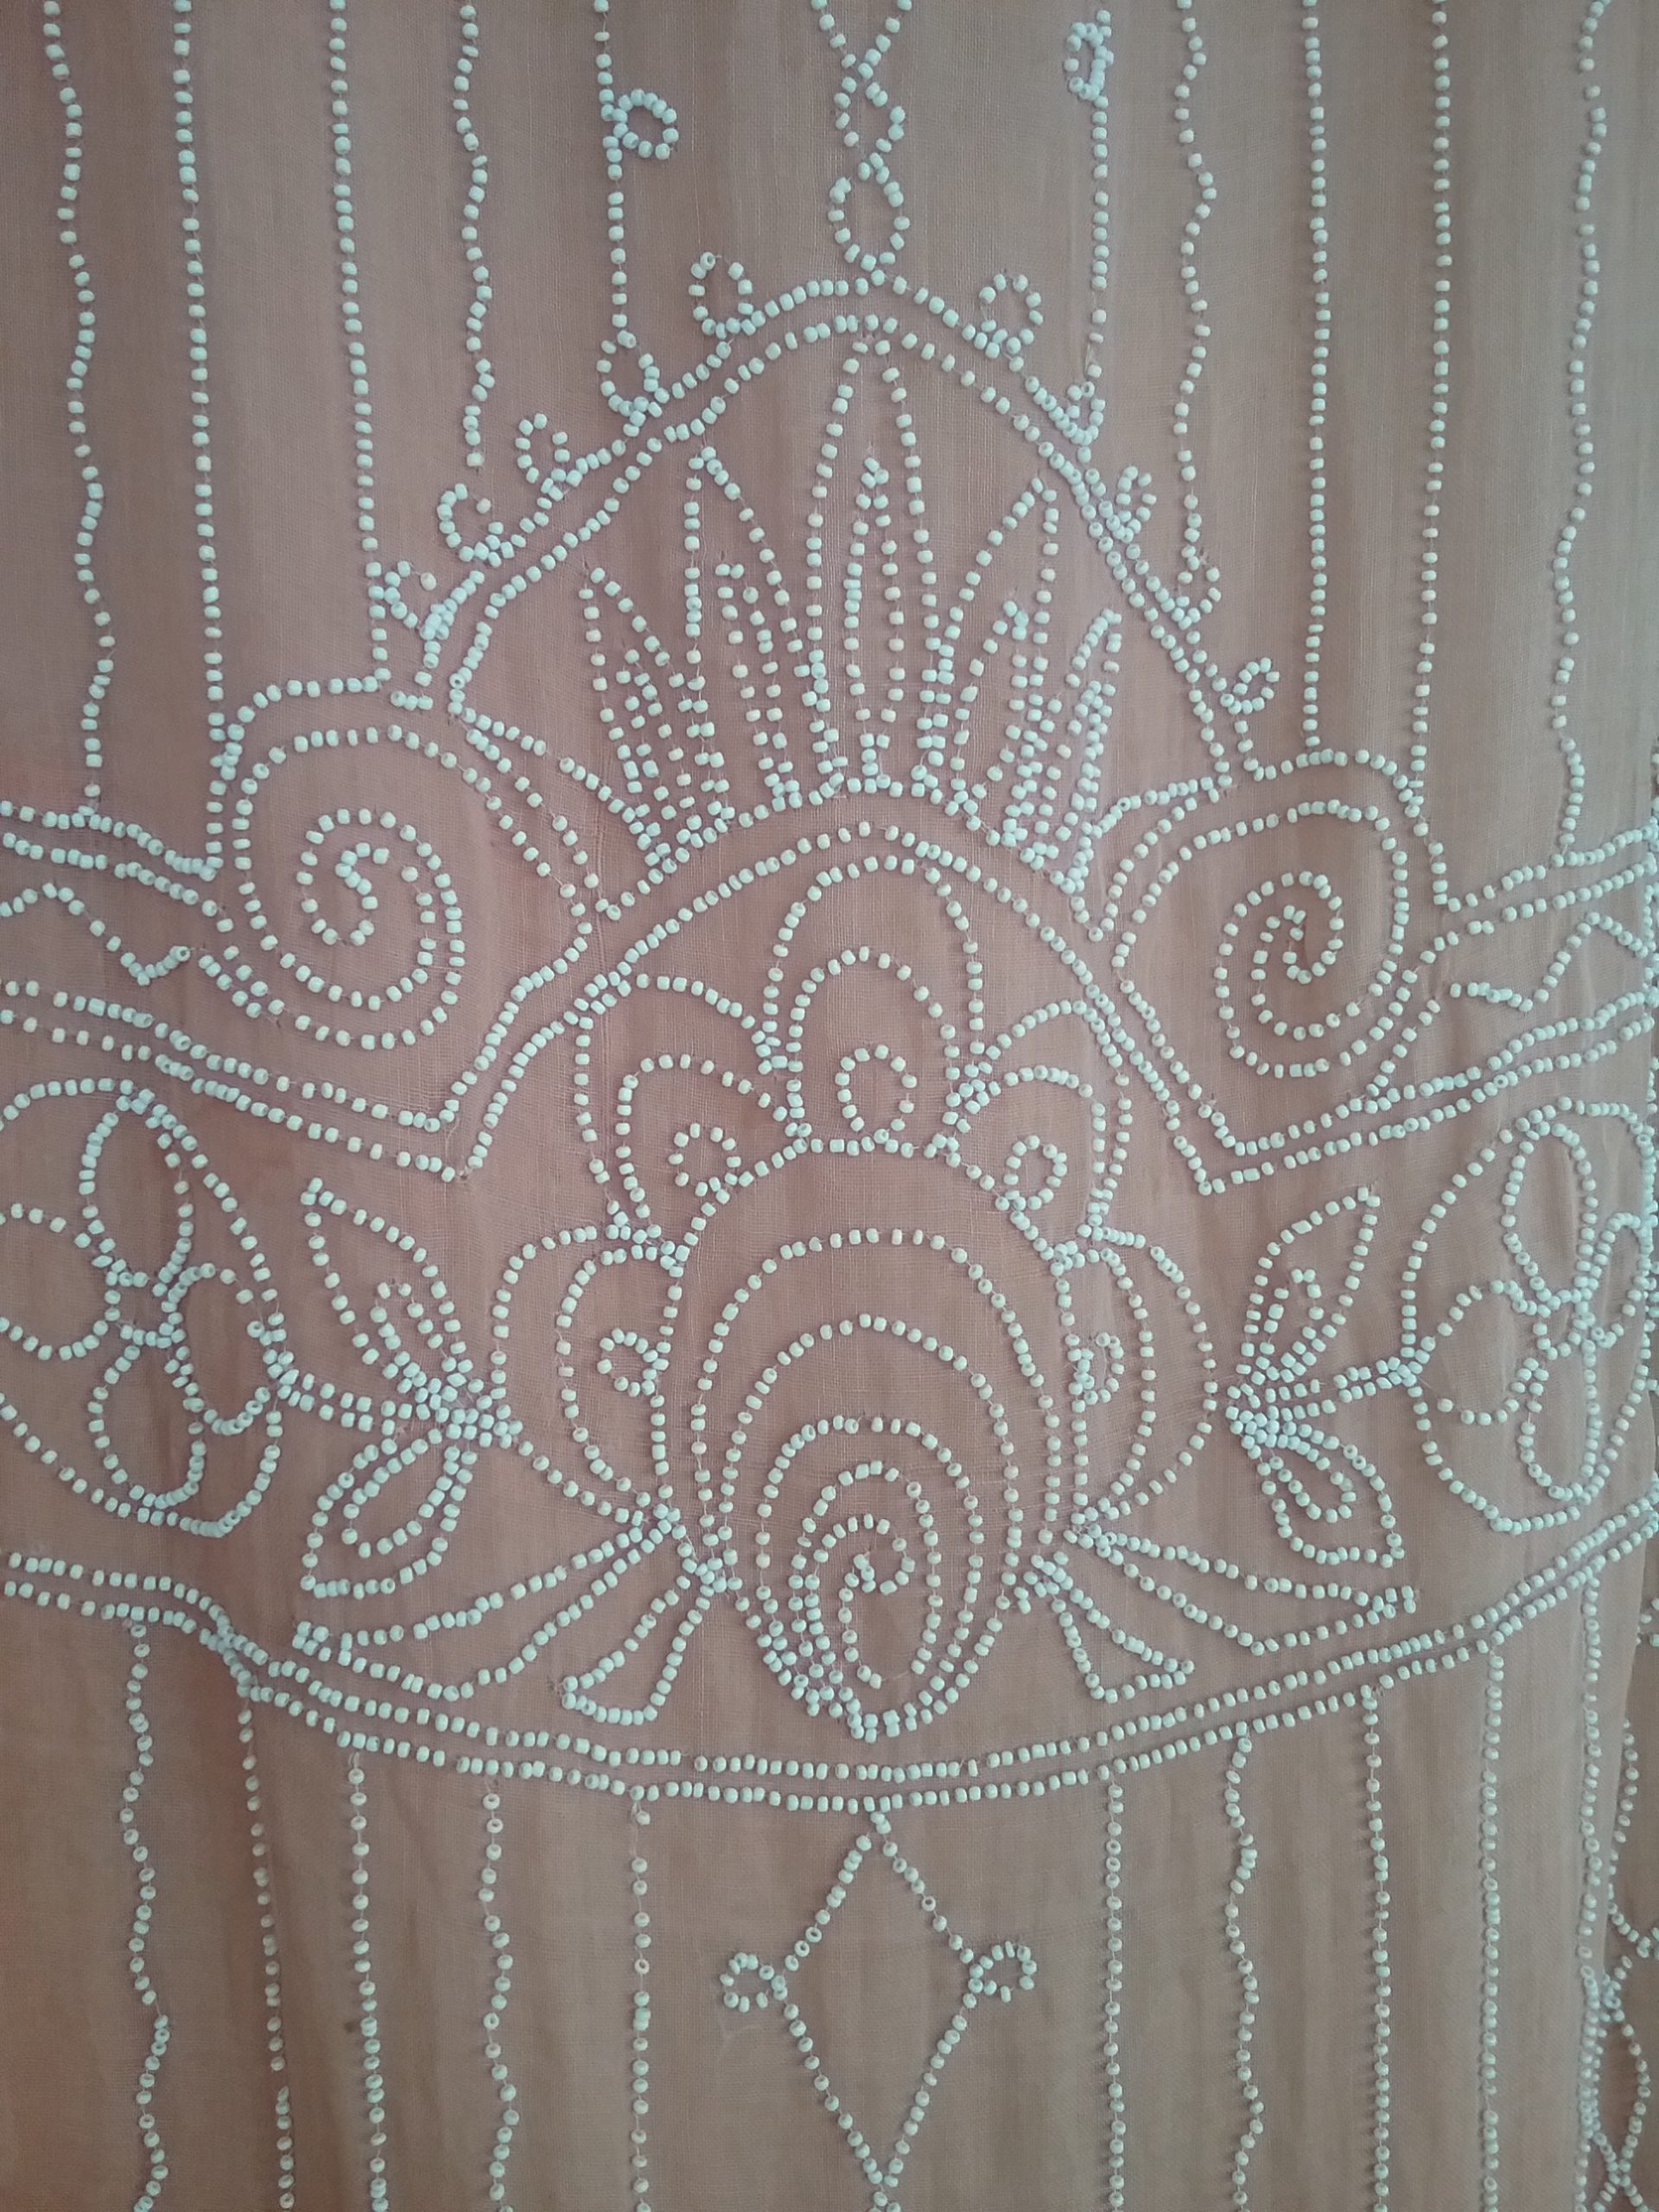 Closeup of beadwork on peach gauze beaded dress. MCHS collections, #1971.10.42.